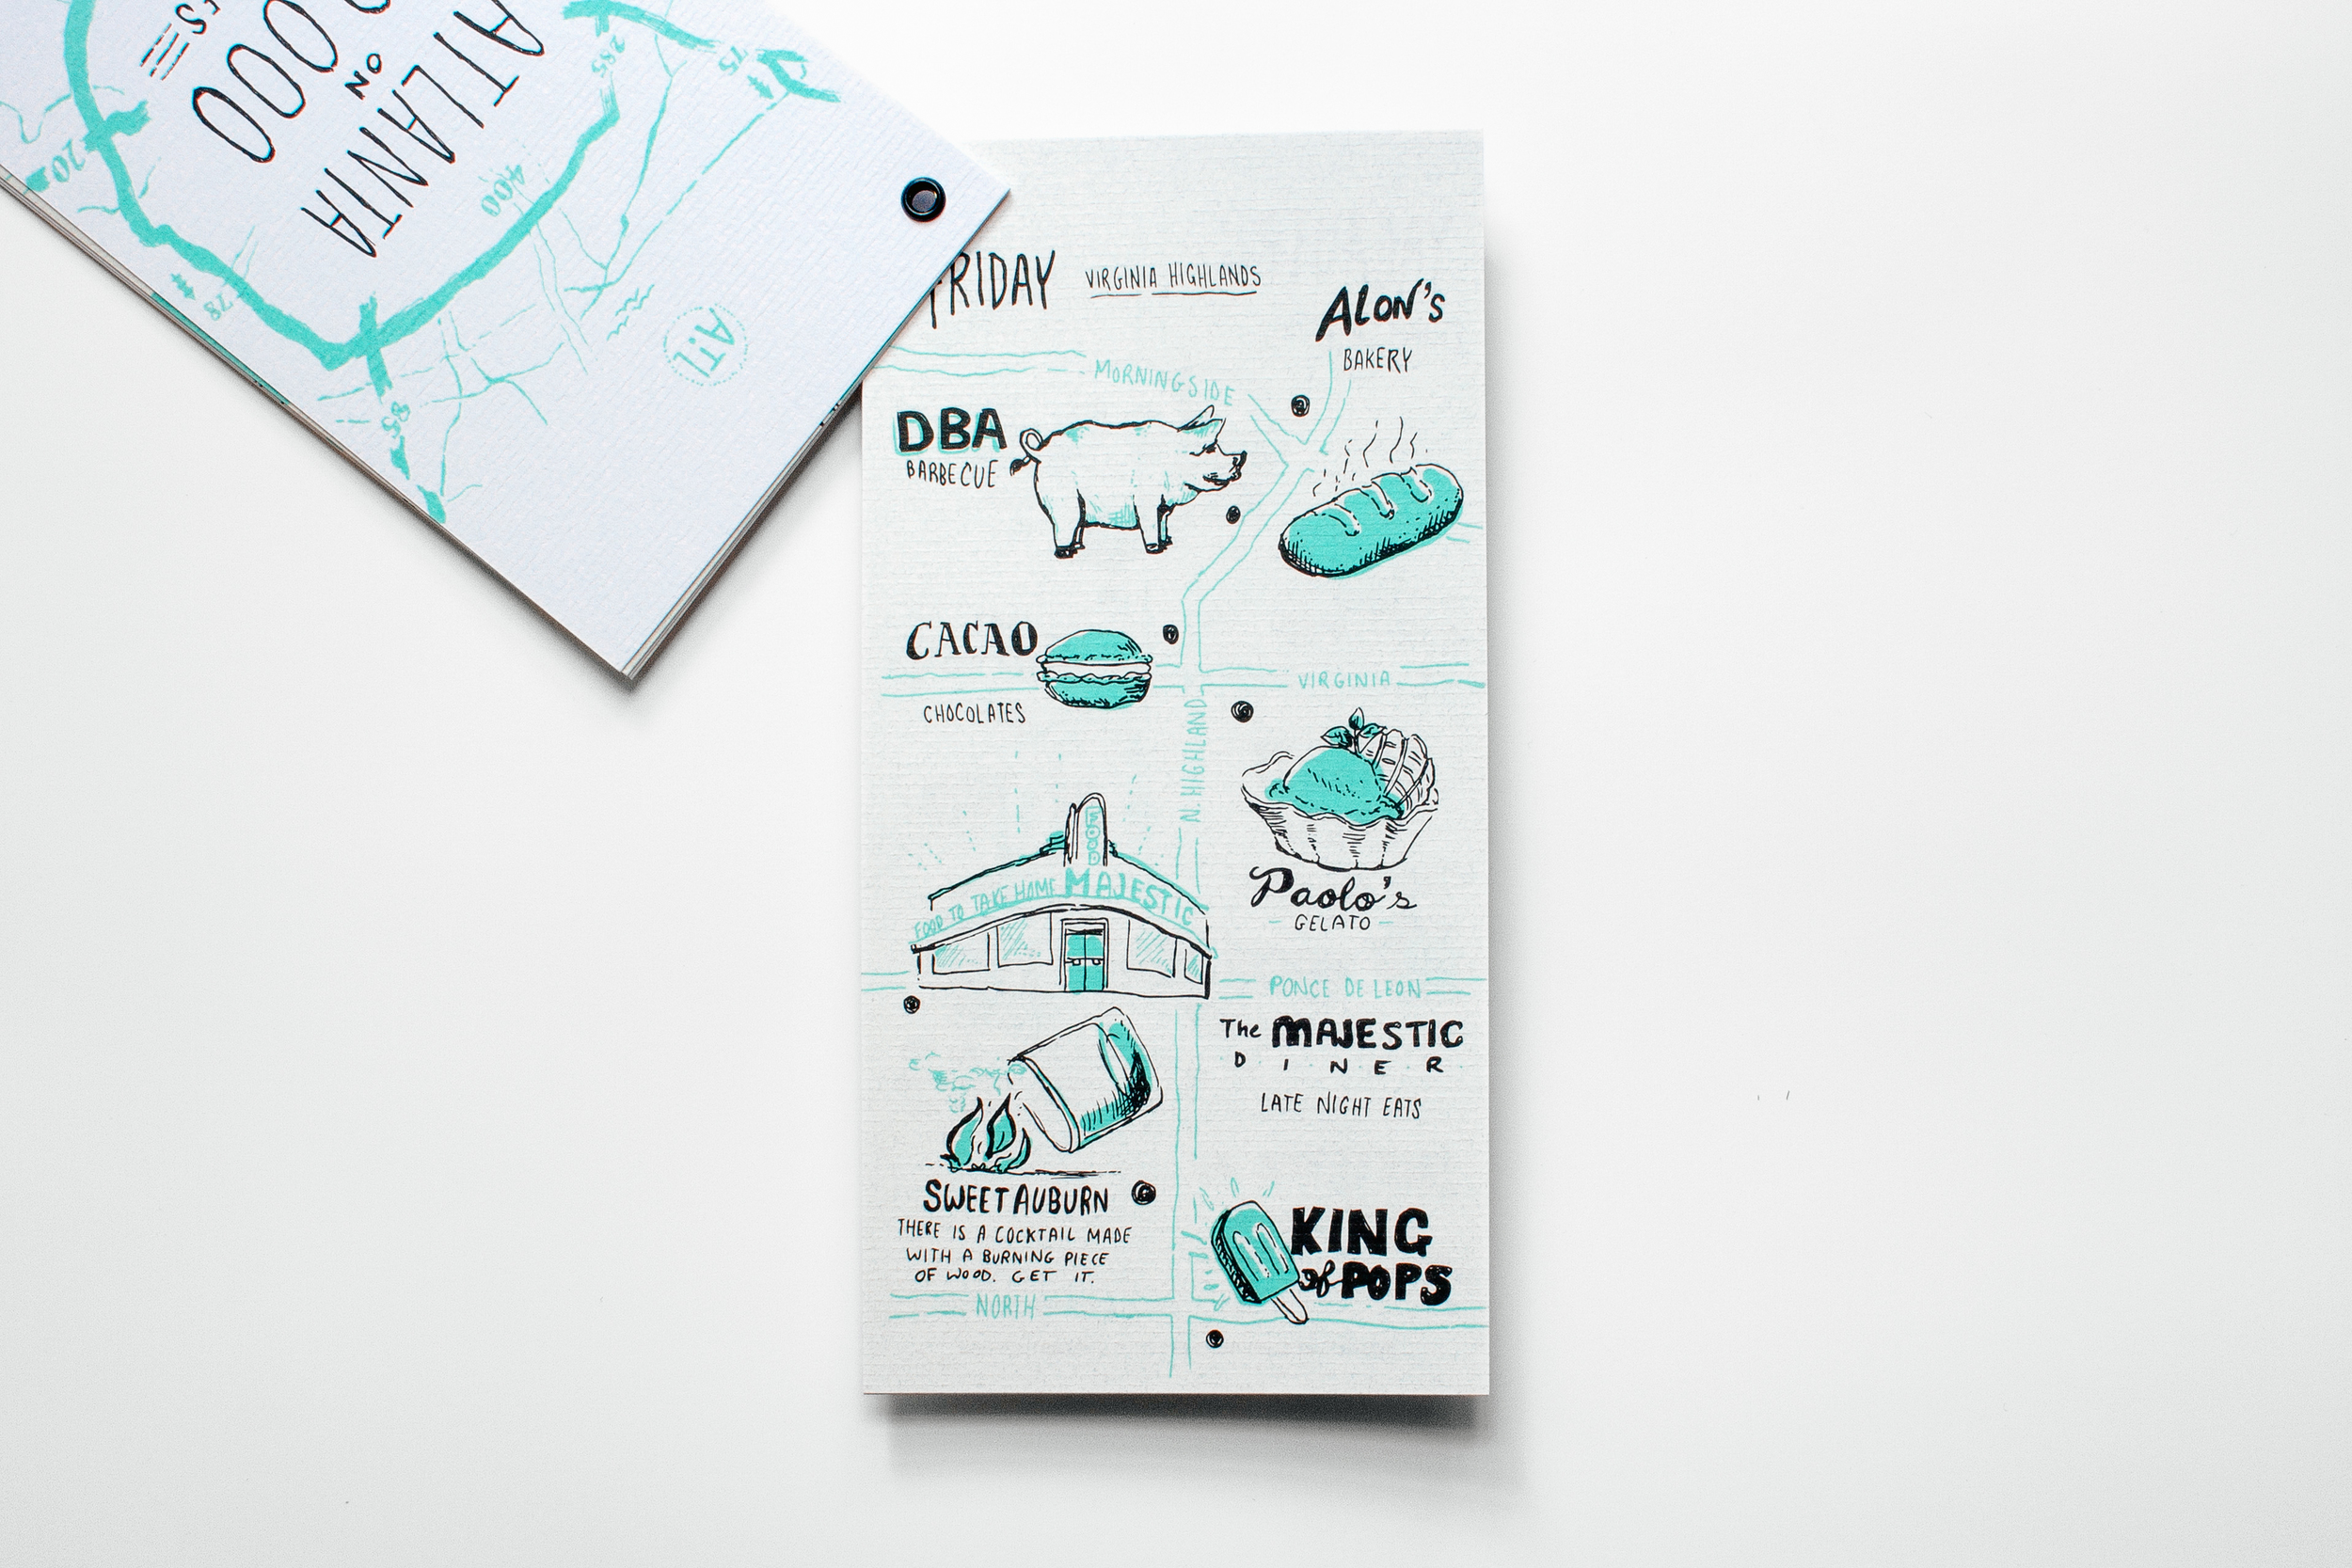 Hand drawing and hand lettering on an illustrated map of Virginia Highlands neighborhood of Atlanta mapping the restaurants DBA Barbecue, Alon's bakery, cacao chocolate, paolo's gelato, the majestic, sweet auburn and the king of pops. Printed on Neenah Paper CLASSIC Laid Text Whitestone 75T.